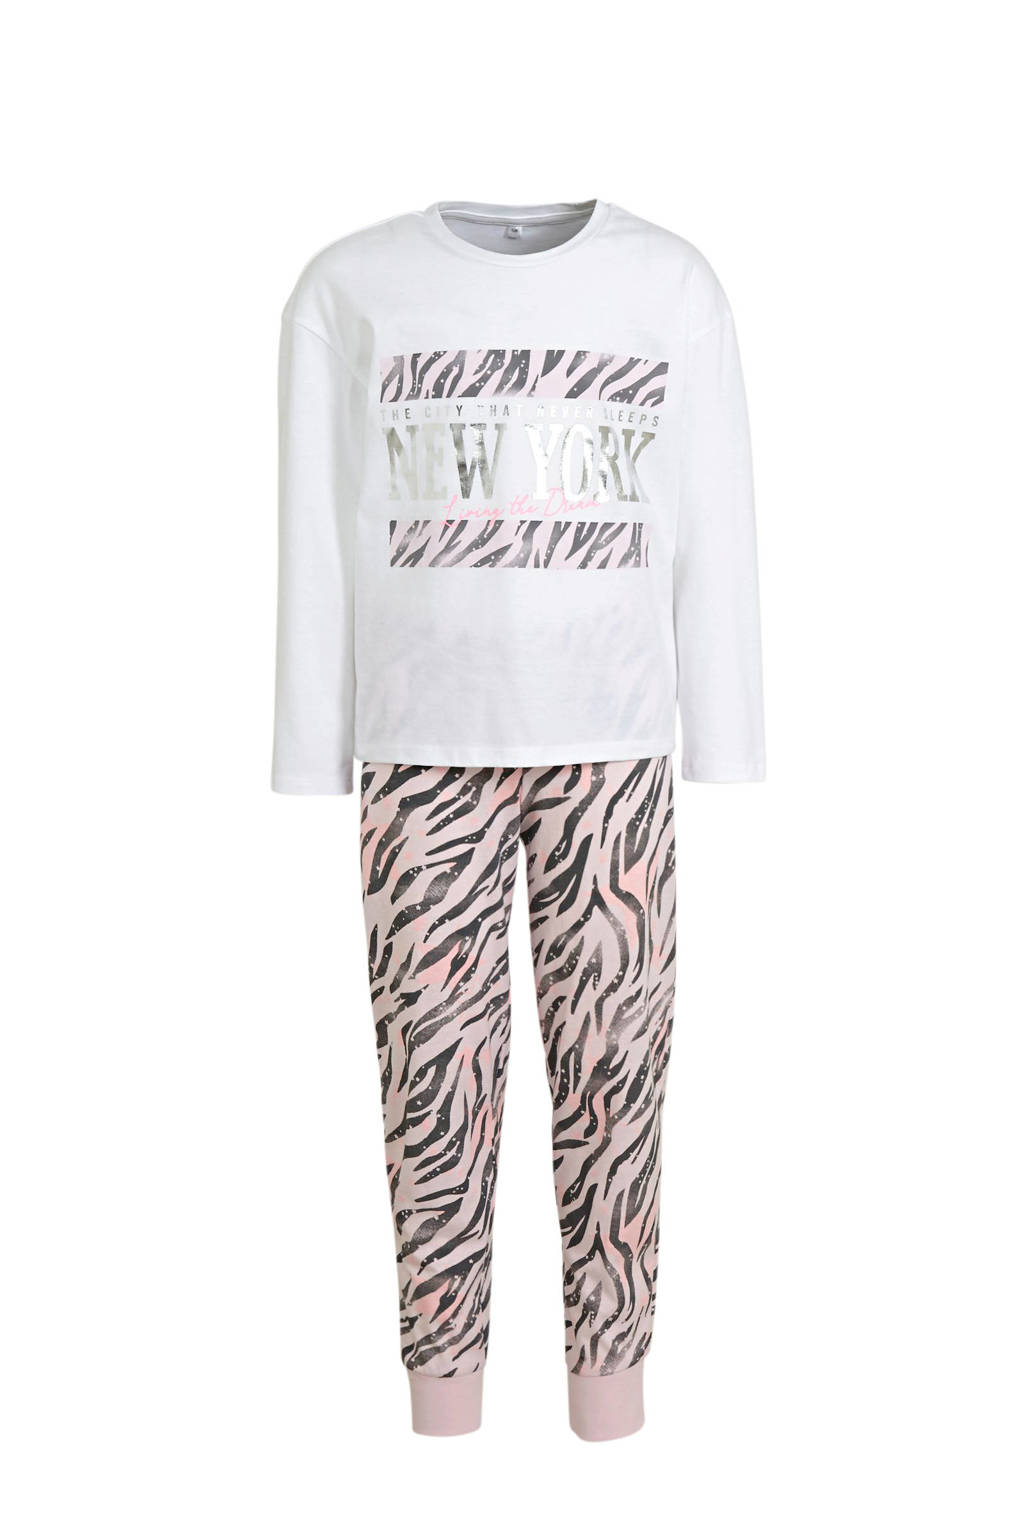 C&A Here & There pyjama all over print wit/beige, Wit